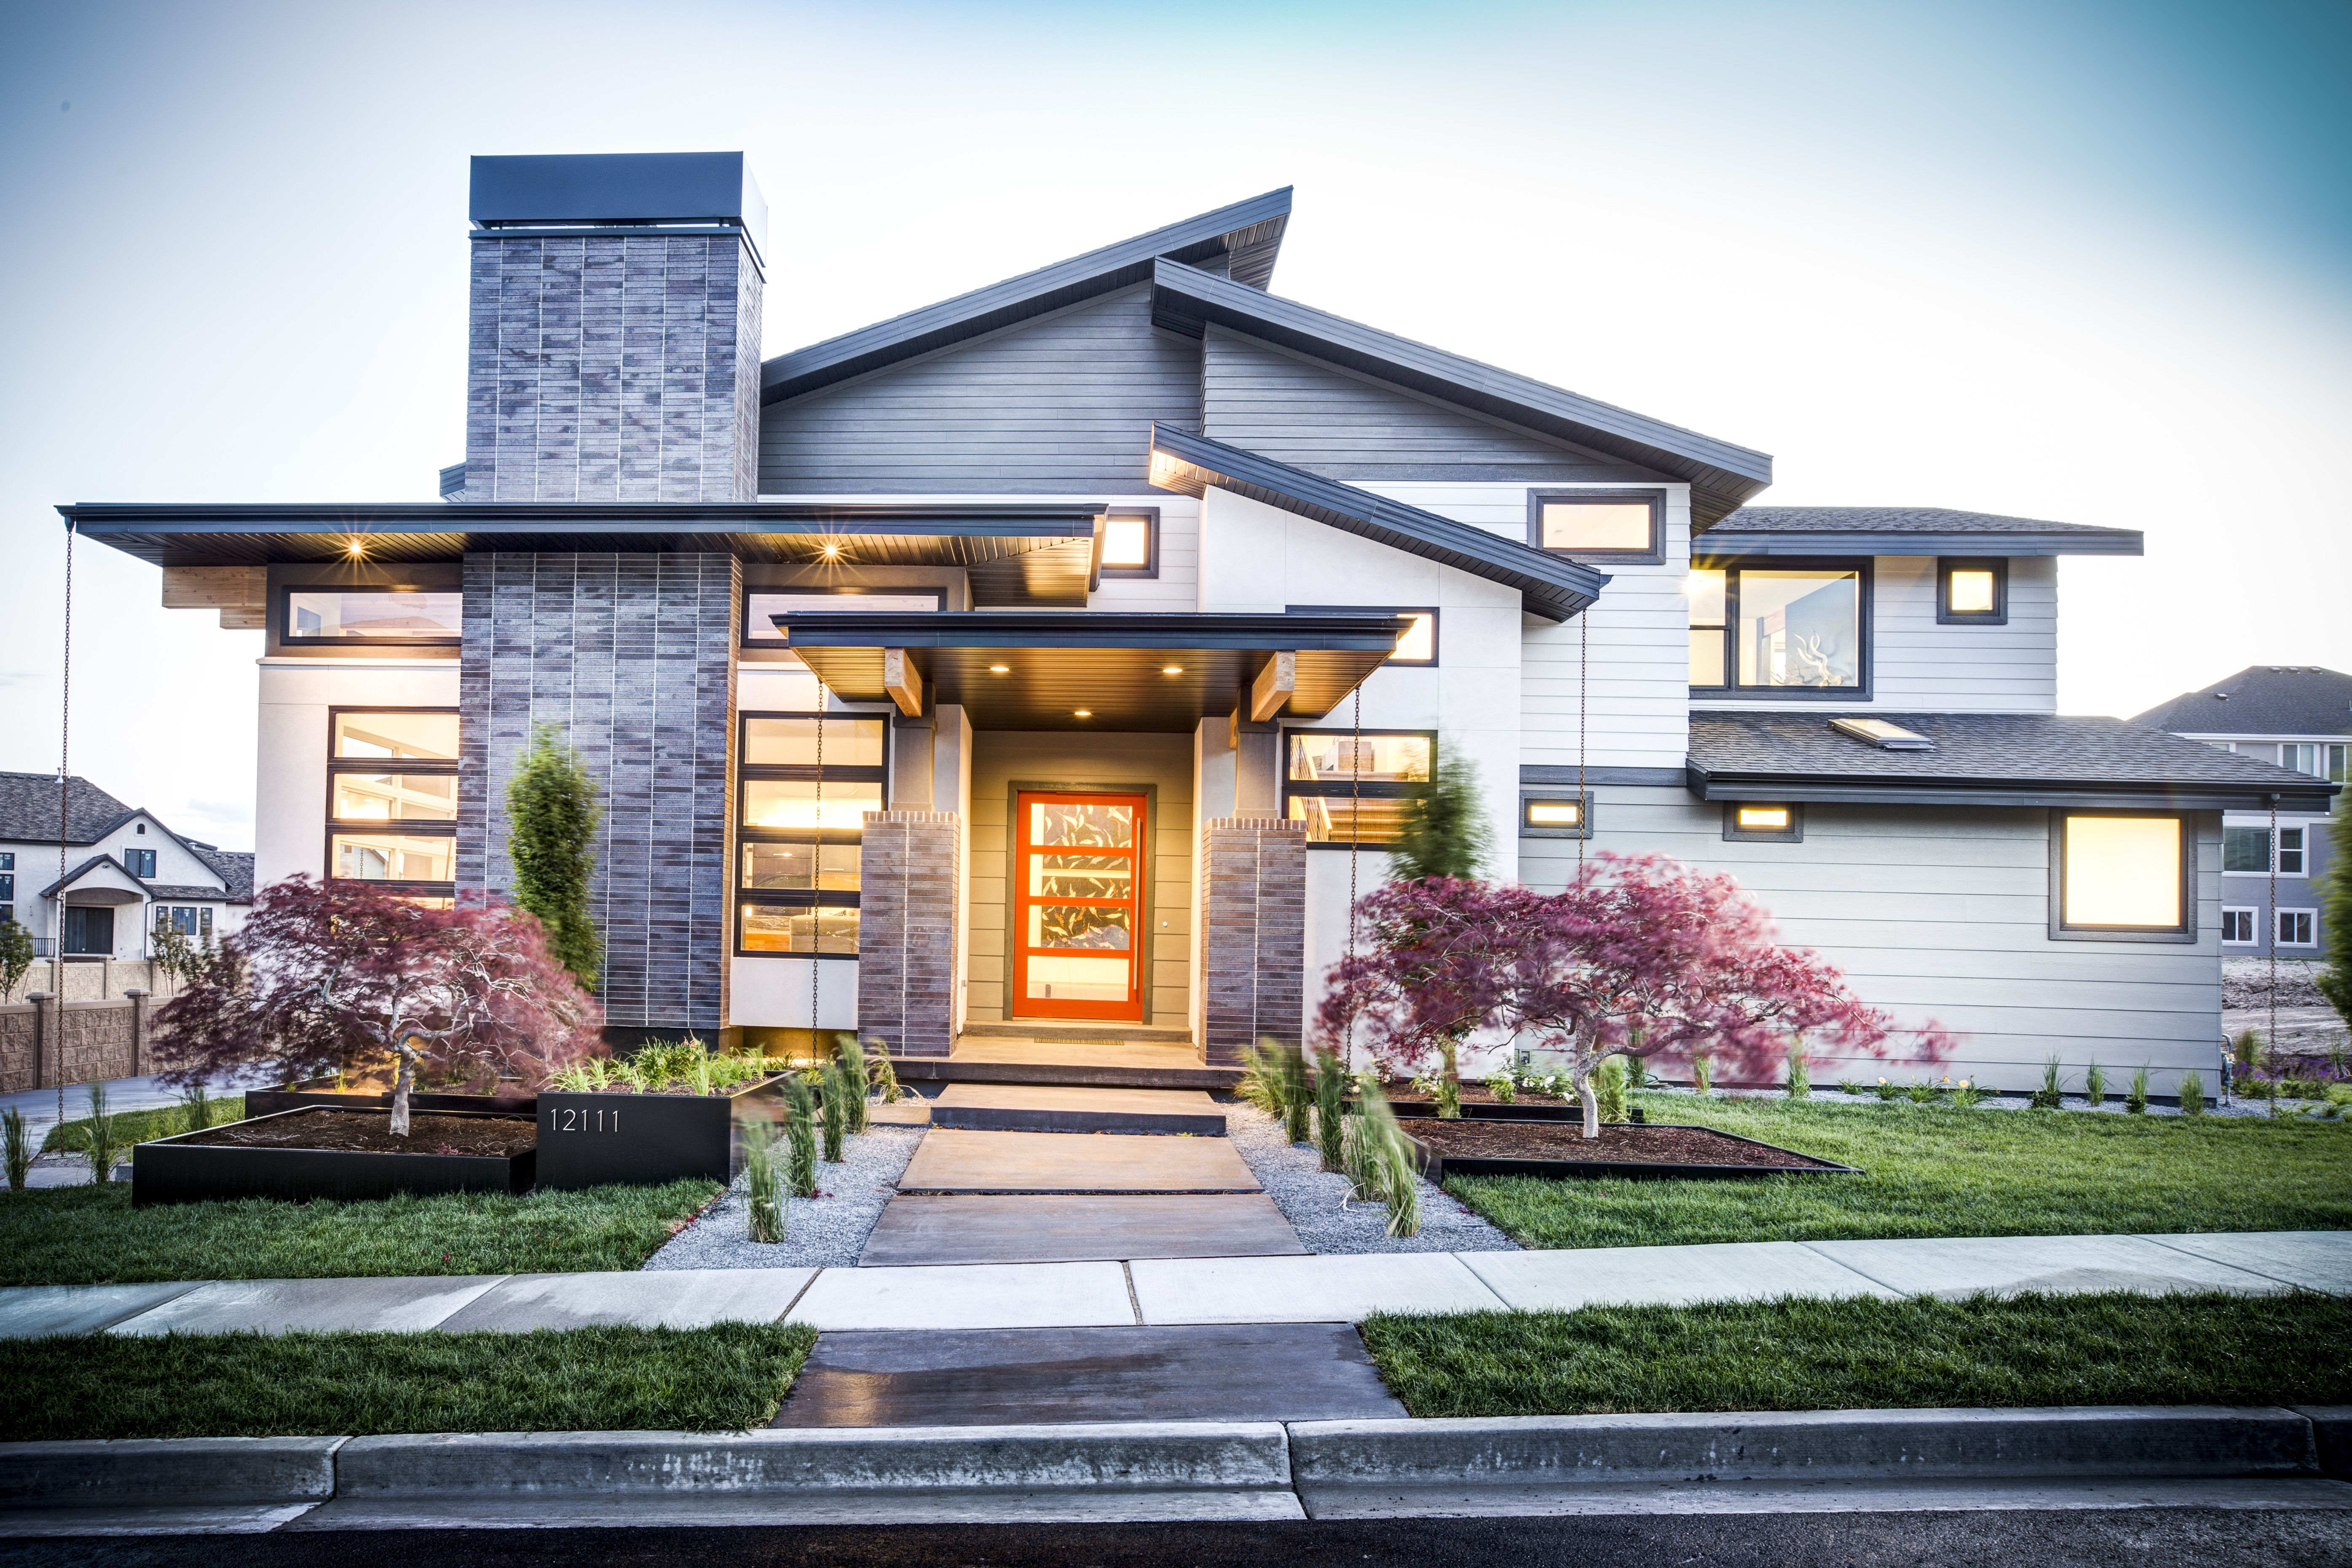 Beautiful SemiModern Home  Traditional Elegant Interior Design  Architecturally Significant